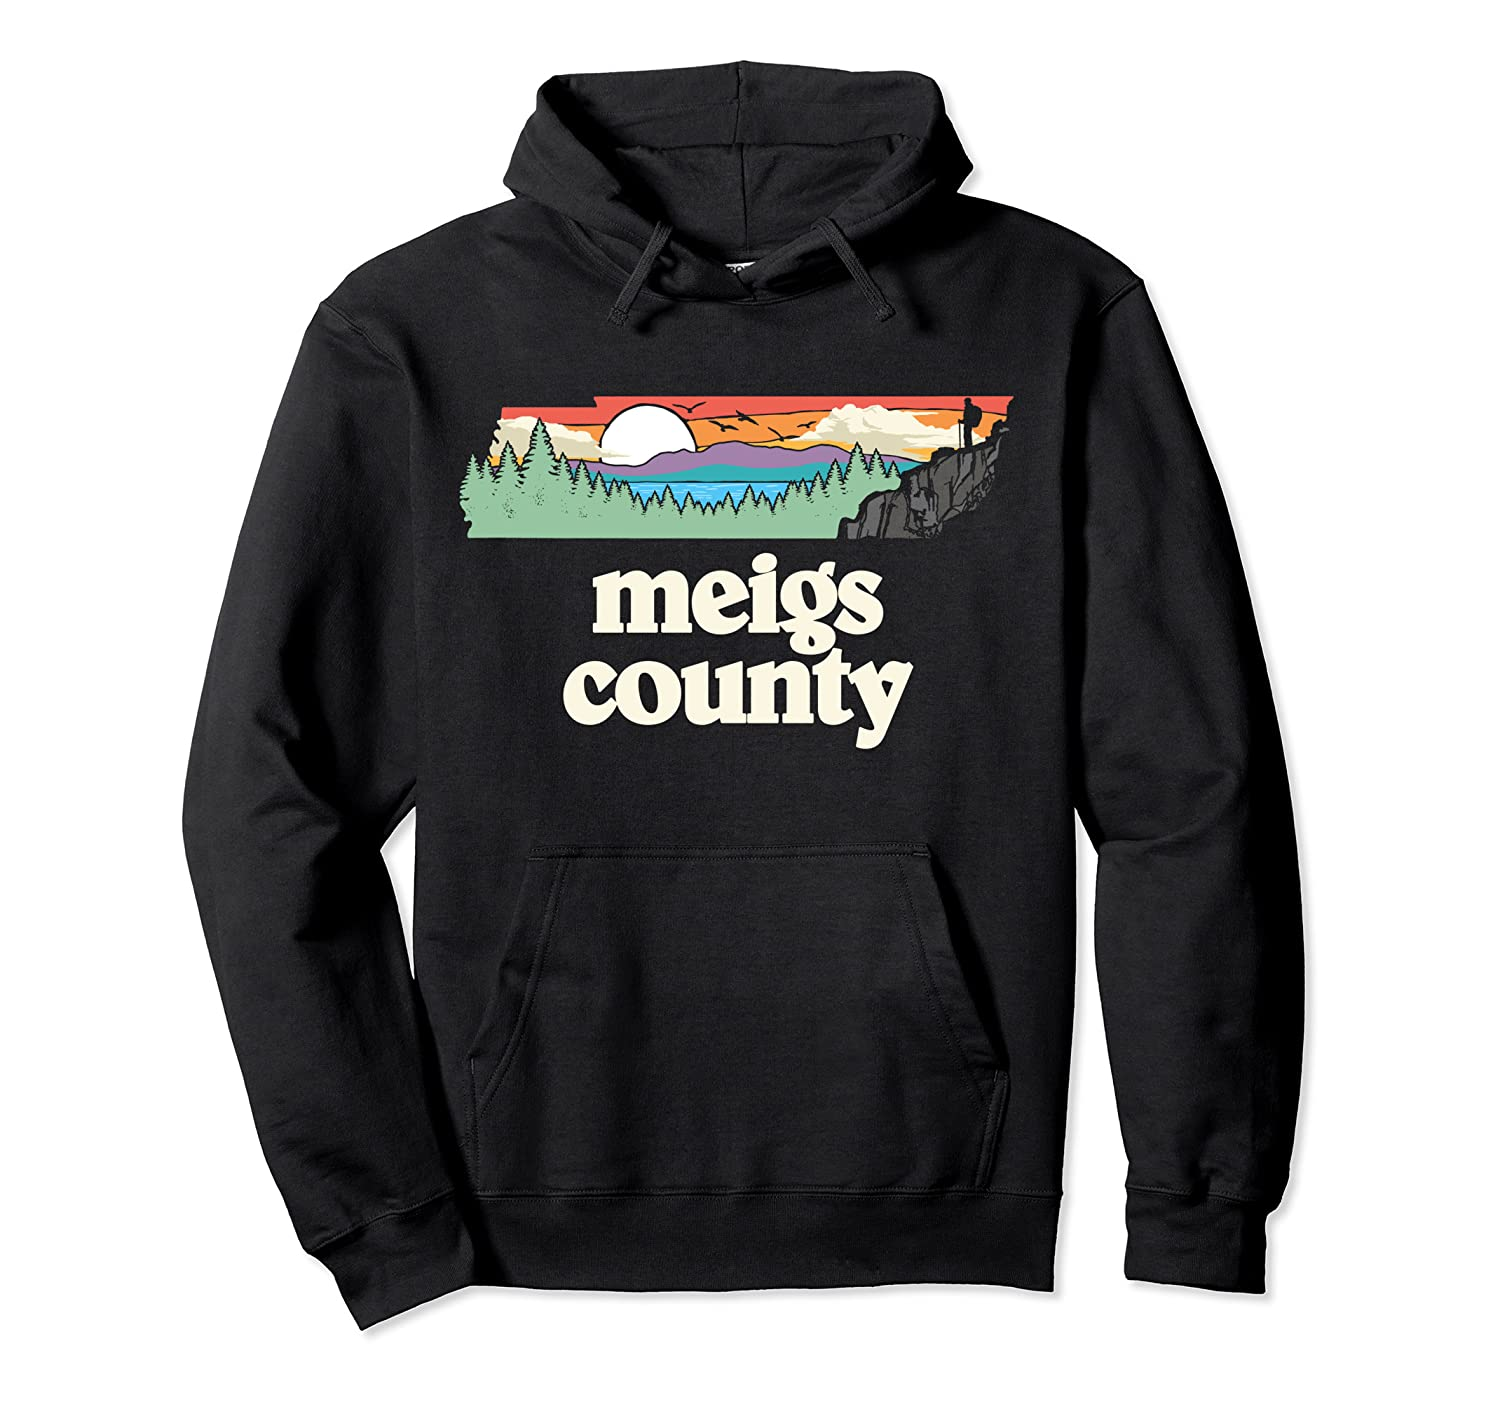 Meigs County Tennessee Outdoors Retro Nature Graphic T Shirt Unisex Pullover Hoodie